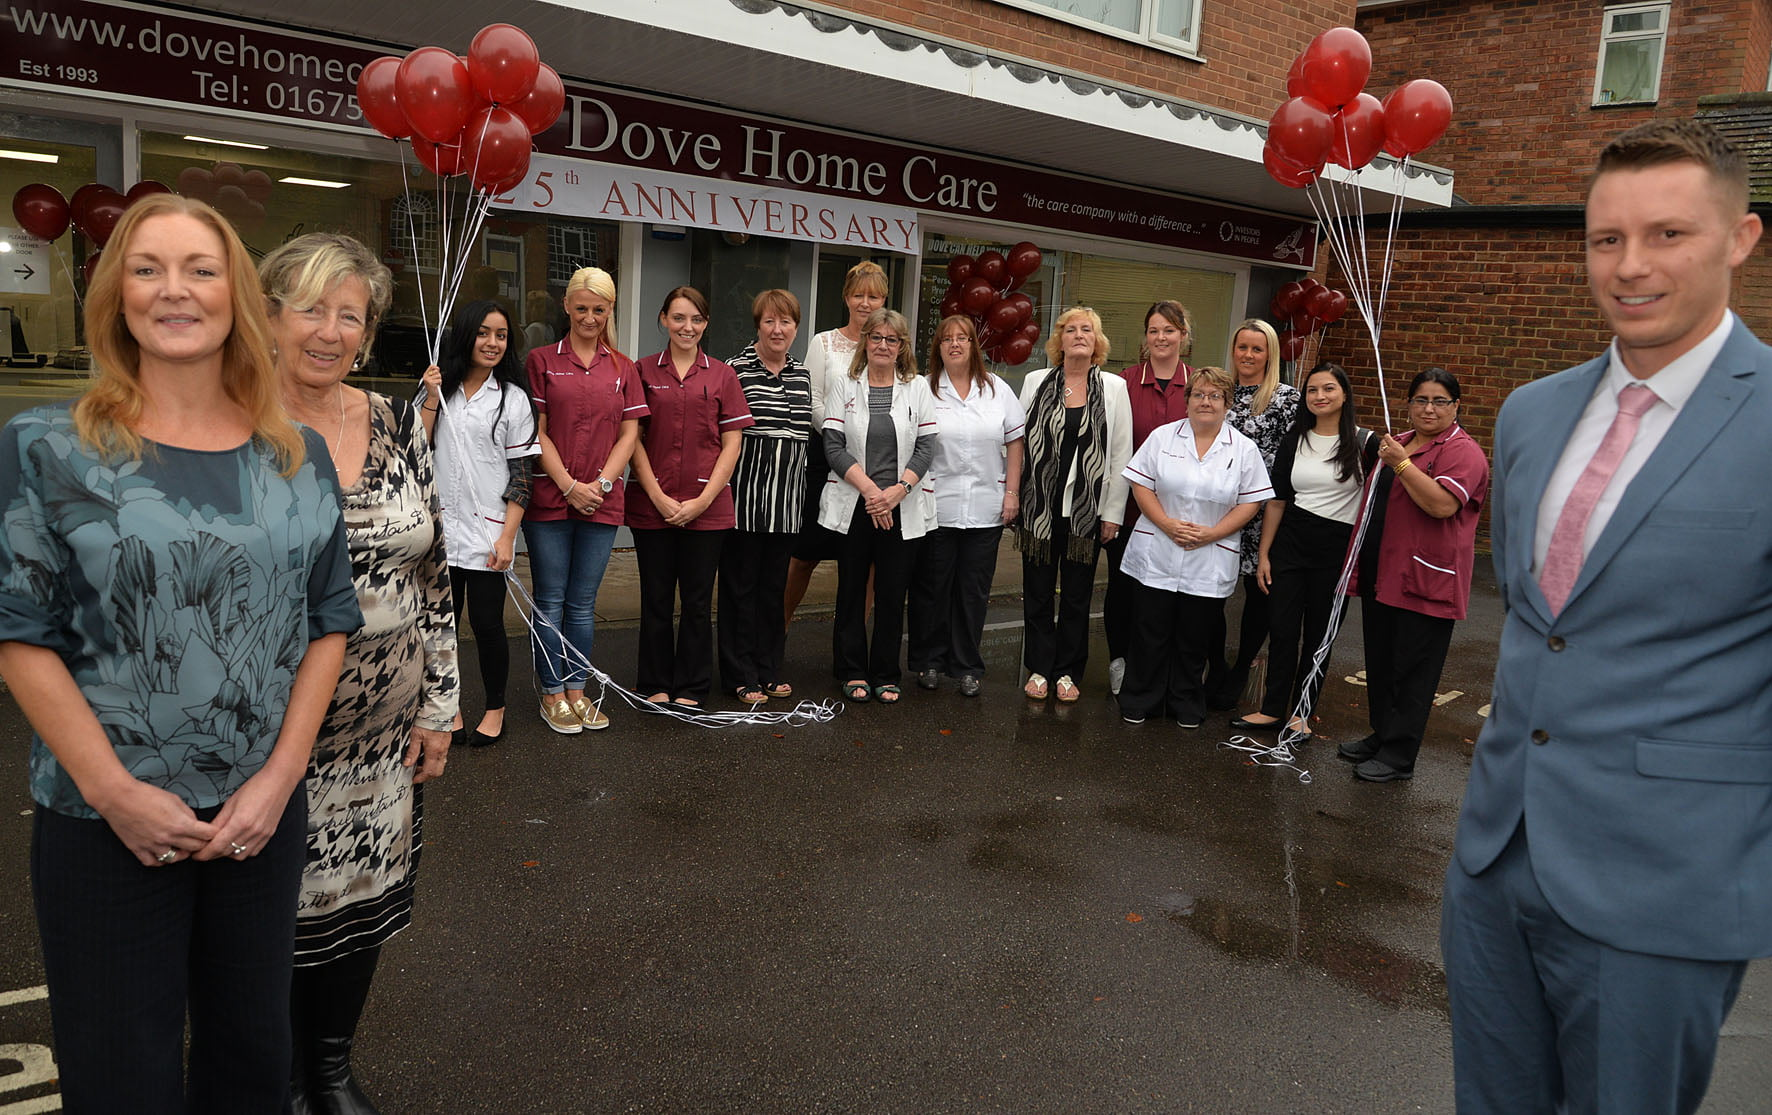 Dove Home Care Agency celebrated its 25th anniversary